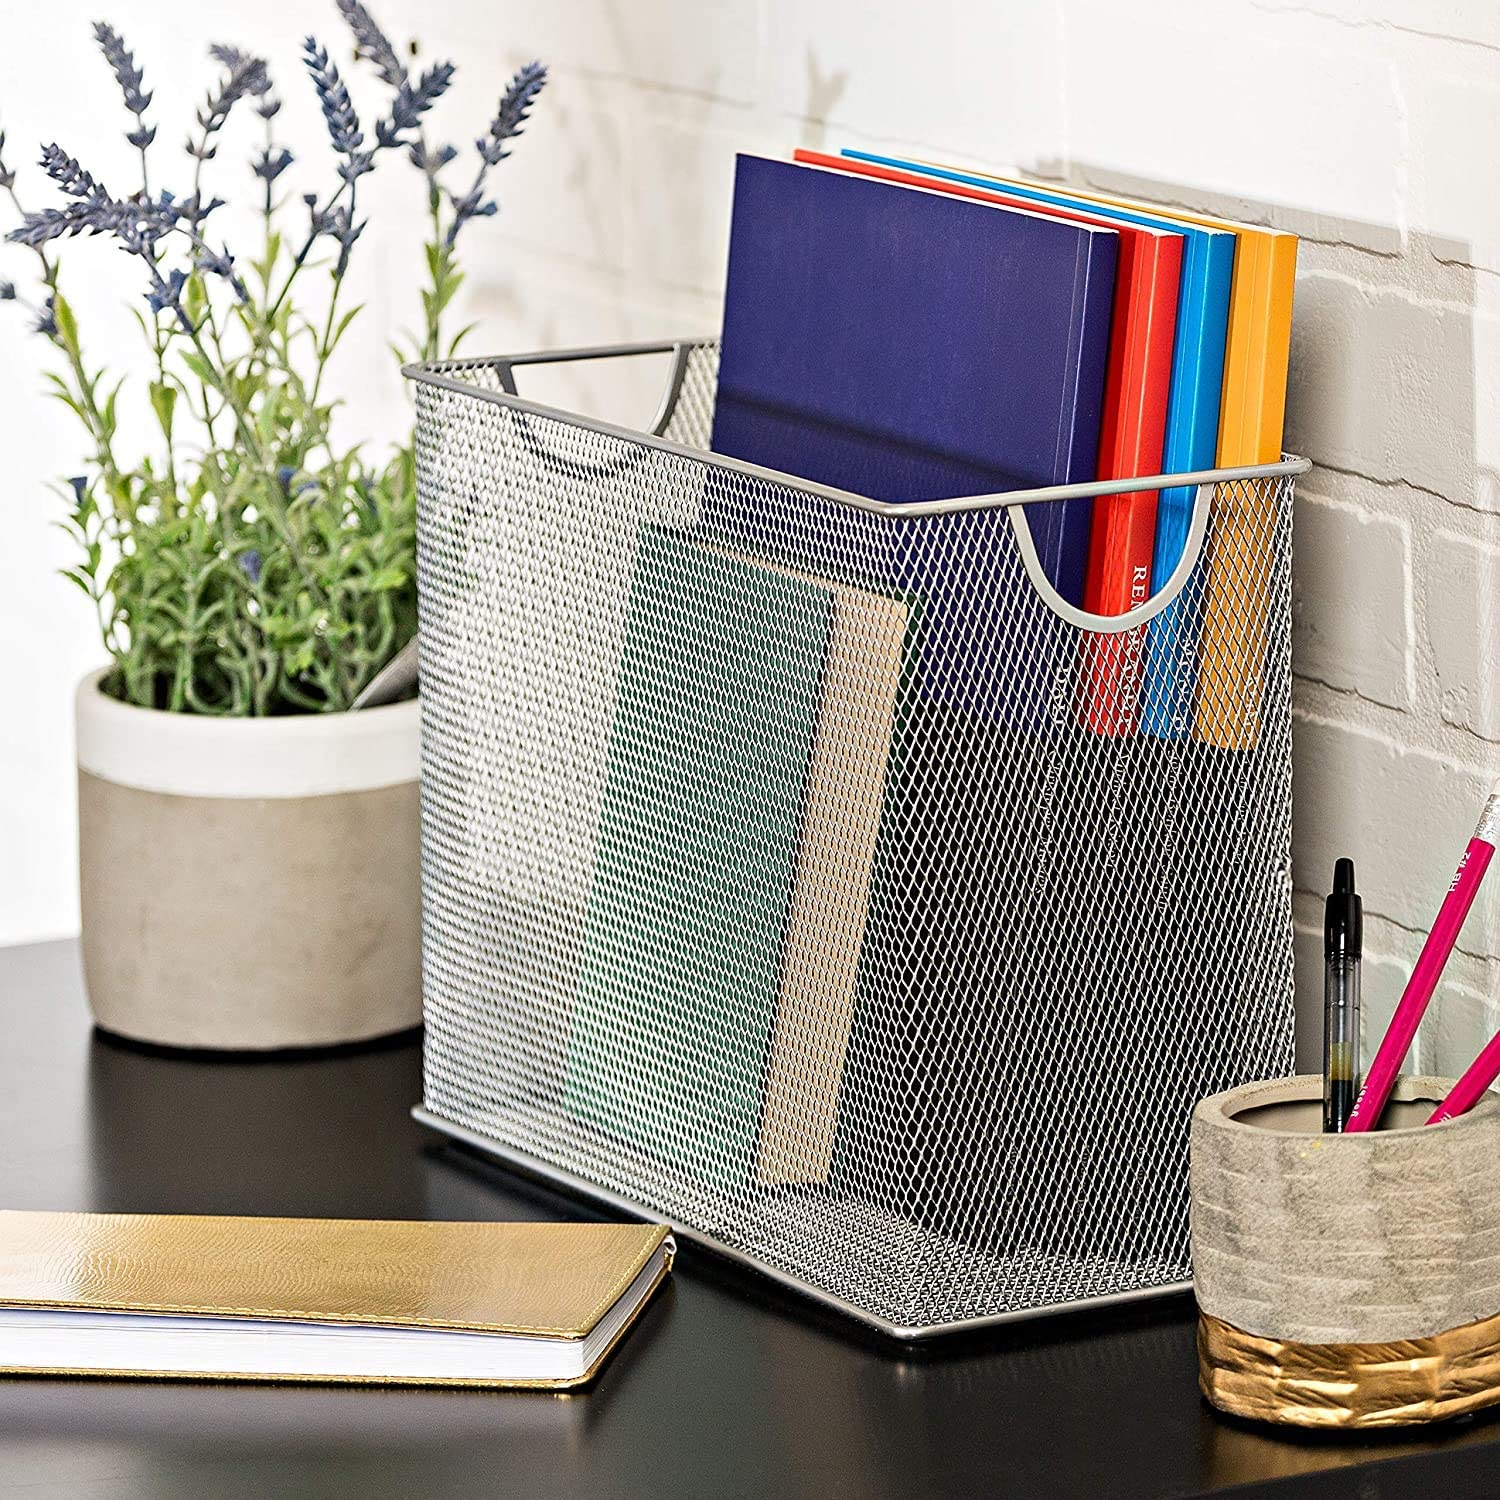 Honey-Can-Do Grey Mesh Tabletop File Folder, Silver, 5.5 x 12.5 x 9.8: Home & Kitchen